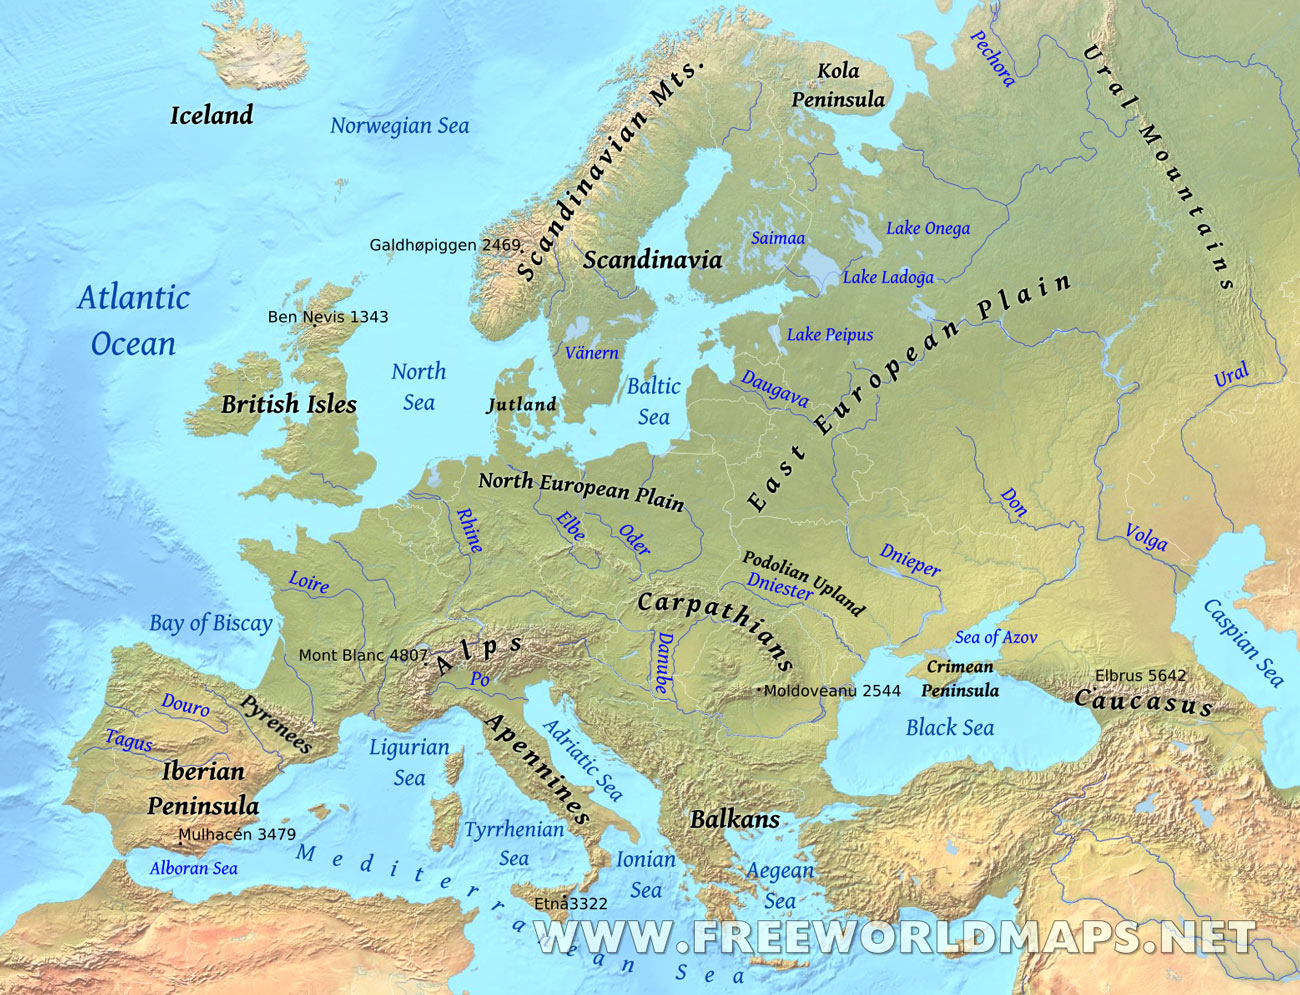 Europe Physical Map Freeworldmapsnet - Physical map of russia